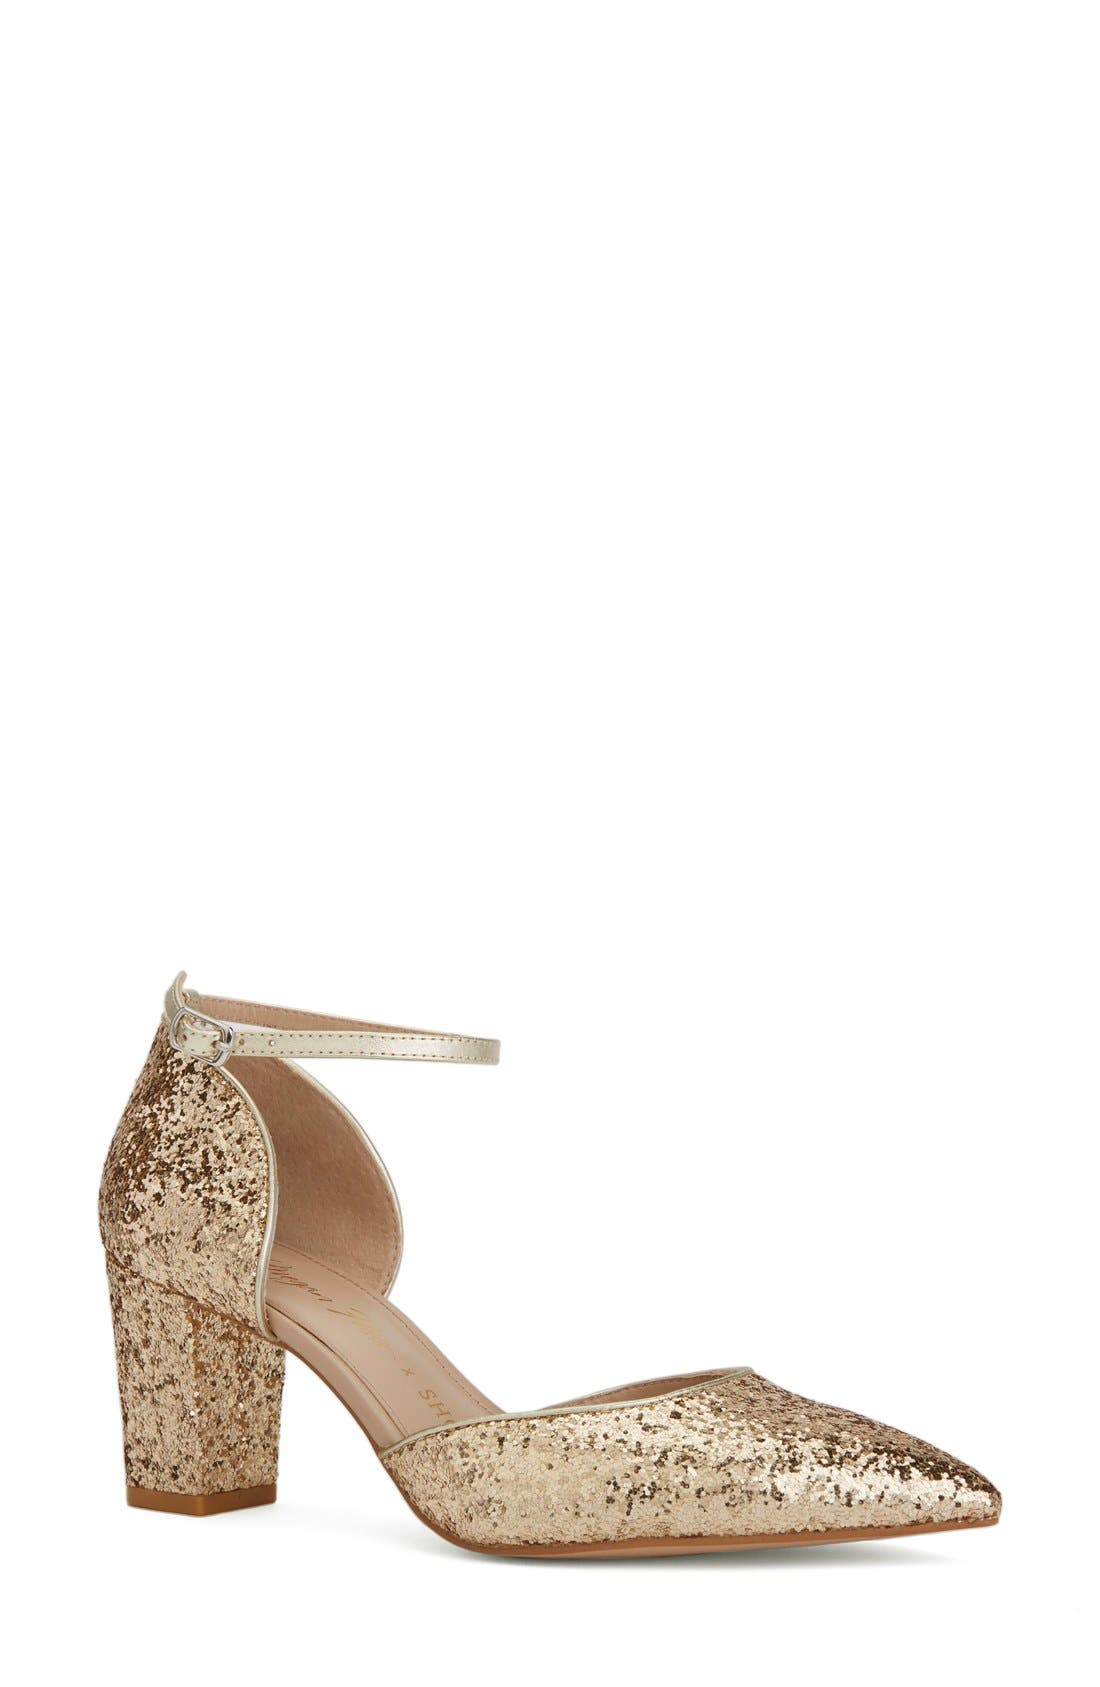 x Megan Hess Fleur-de-lis Collection Pump,                         Main,                         color, Gold Sparkle